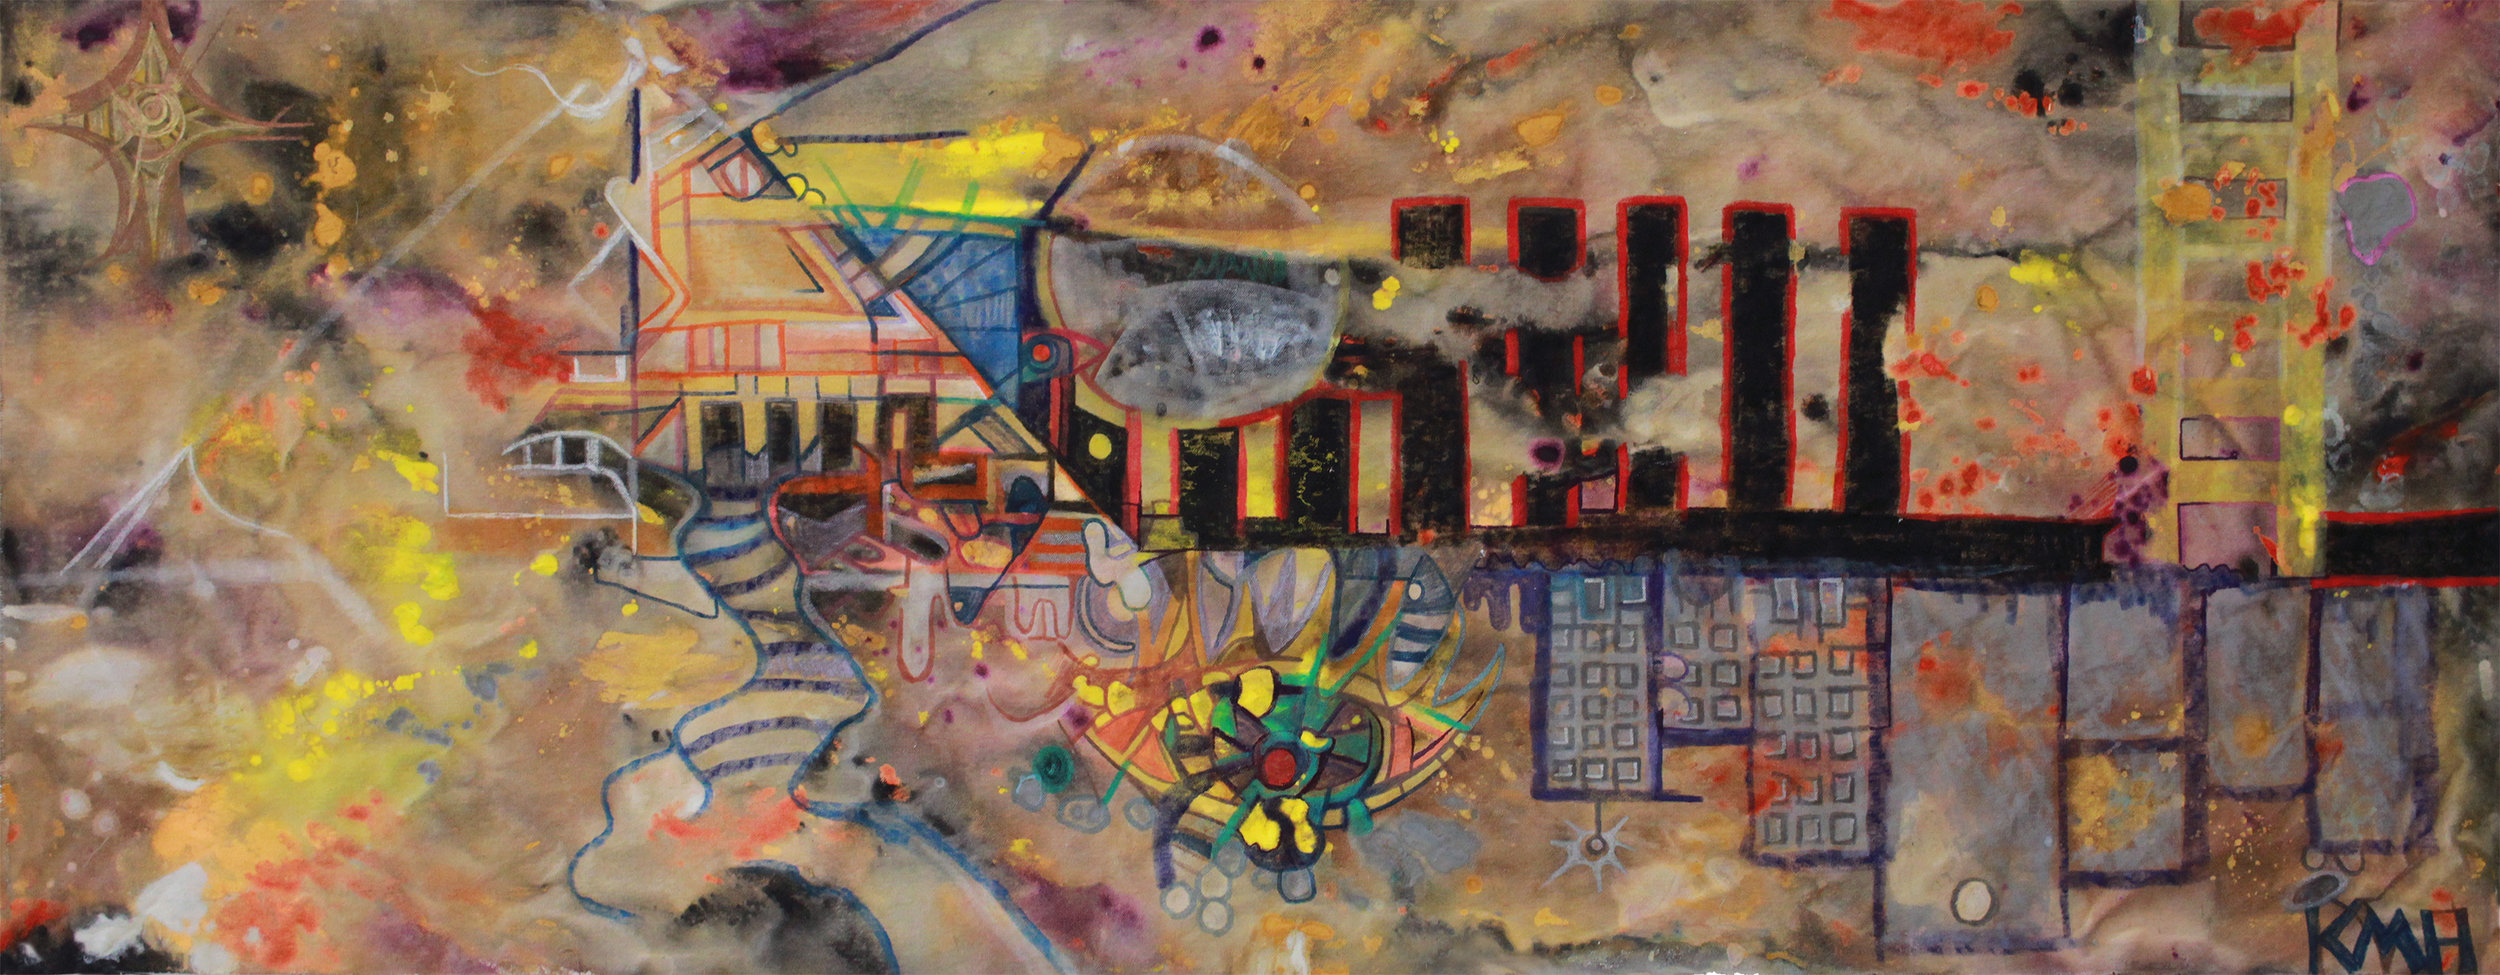 """STRUCTURE""   19 x 52 inches (custom)  Acrylic & Mixed Media on Raw, Un-stretched Canvas (framed)"